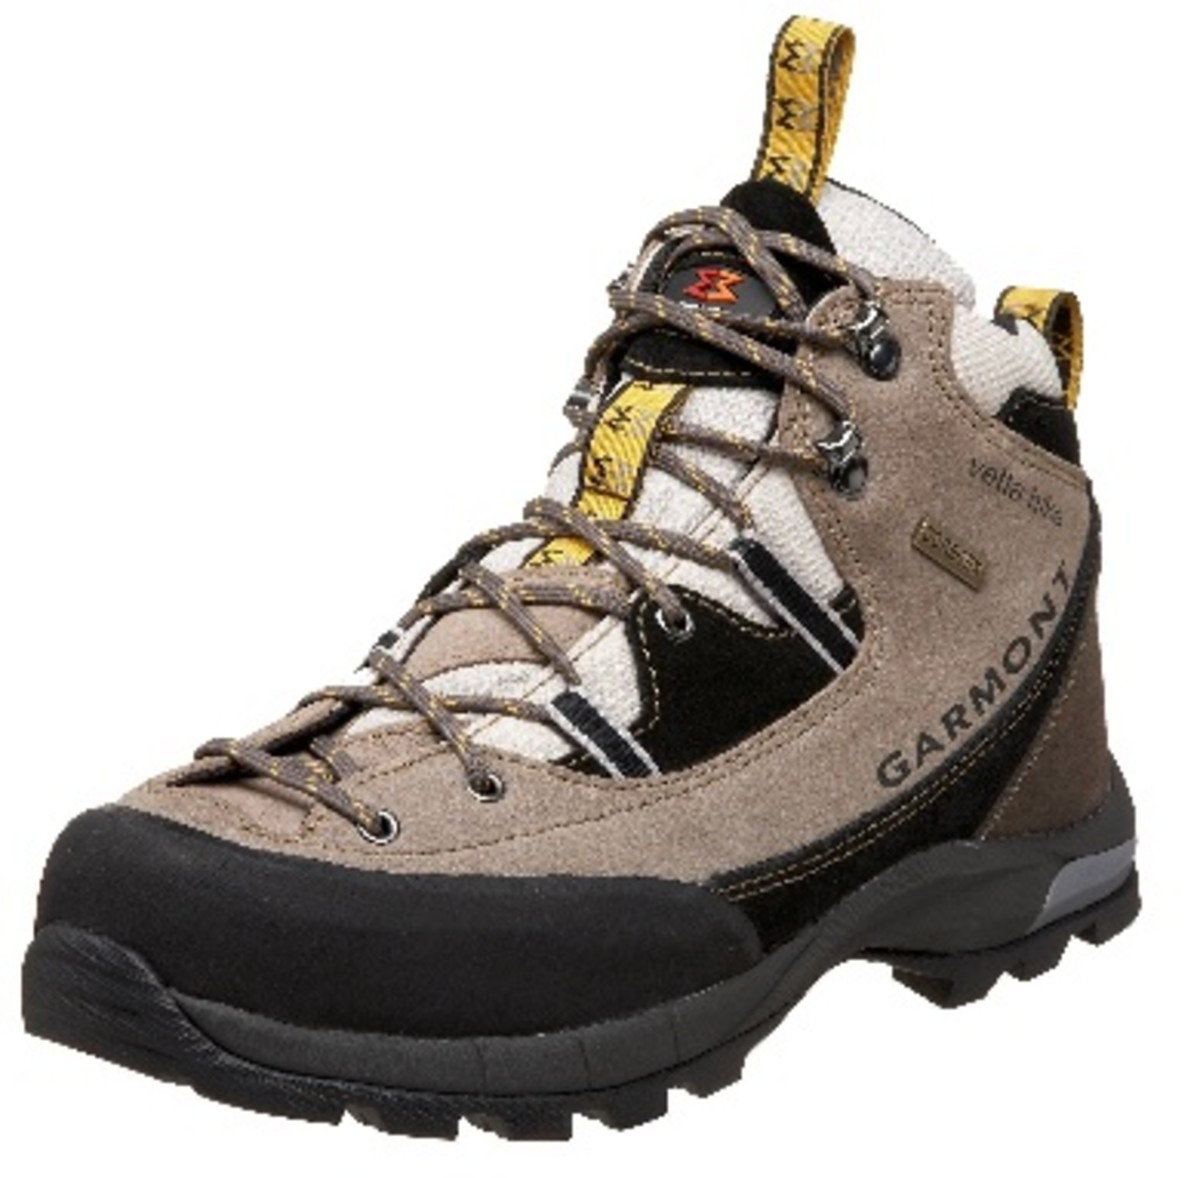 garmont-hiking-boots-guide-reviews-prices-buy-online